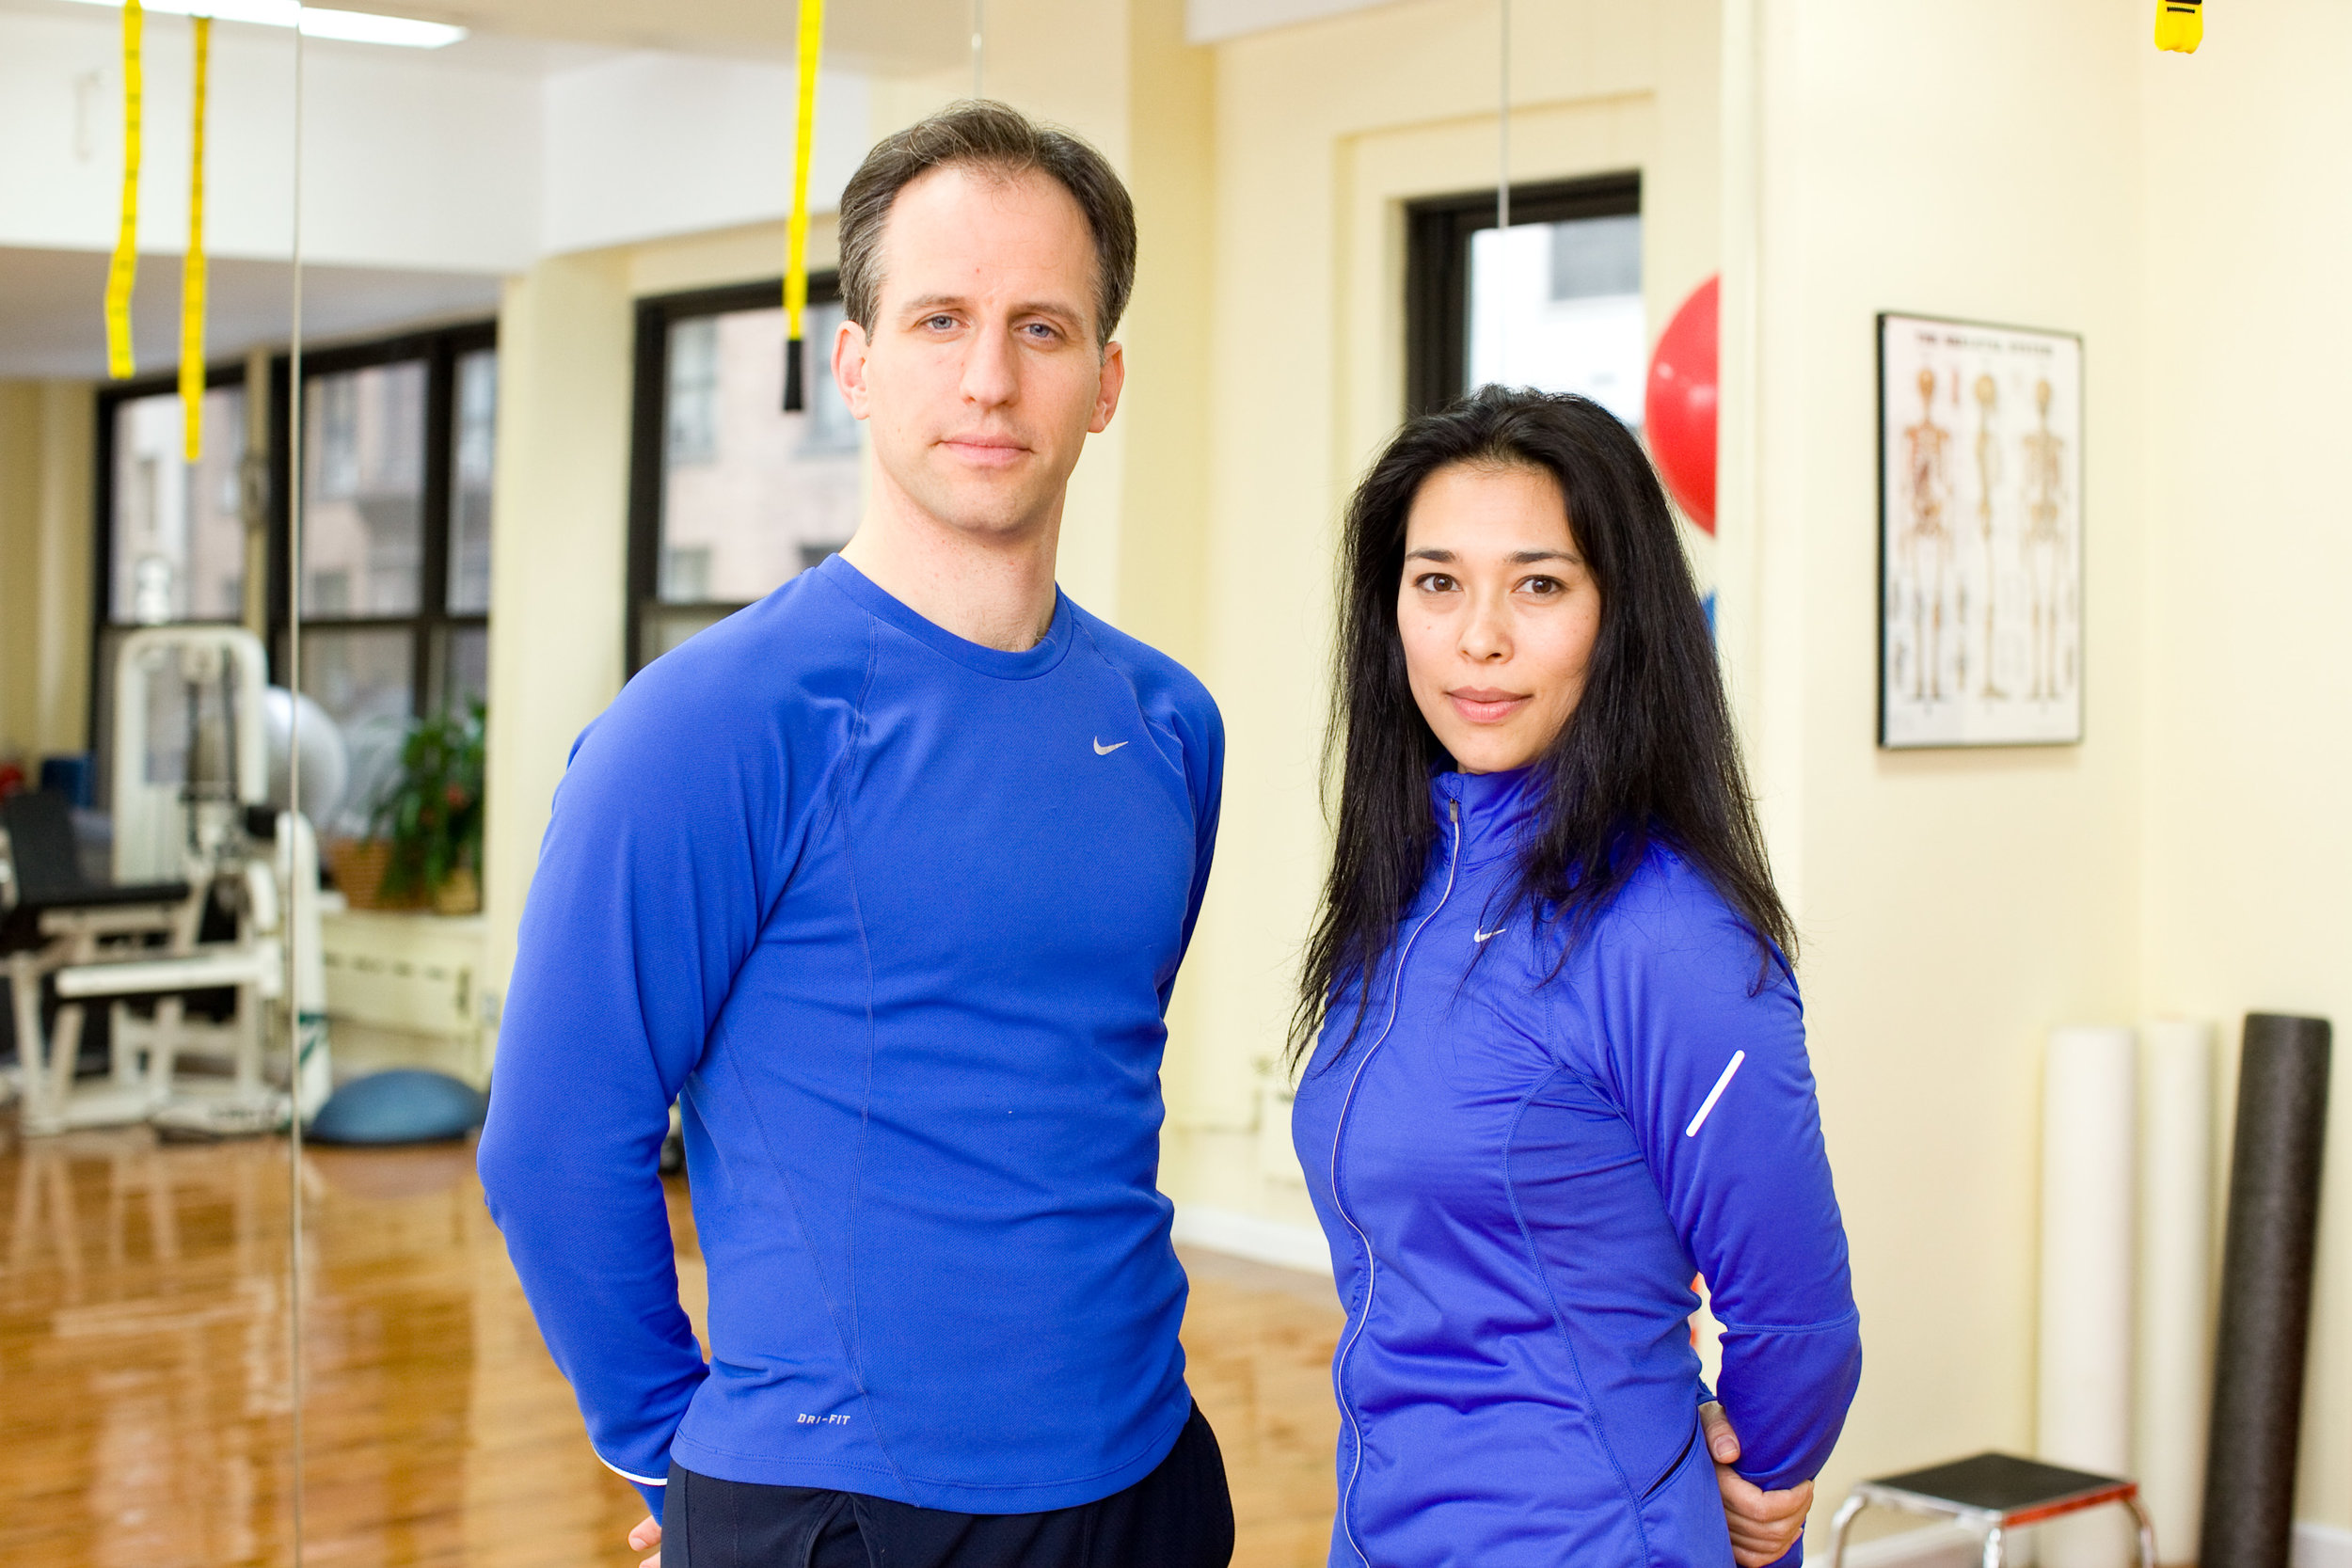 Who We Are - Hi There! We're thrilled you're here. After a decade of training, we realized that there are a few key things all of our clients need to master in order to feel great in their skin. So we put our system down on paper and developed Tyzen Fit. Enjoy!